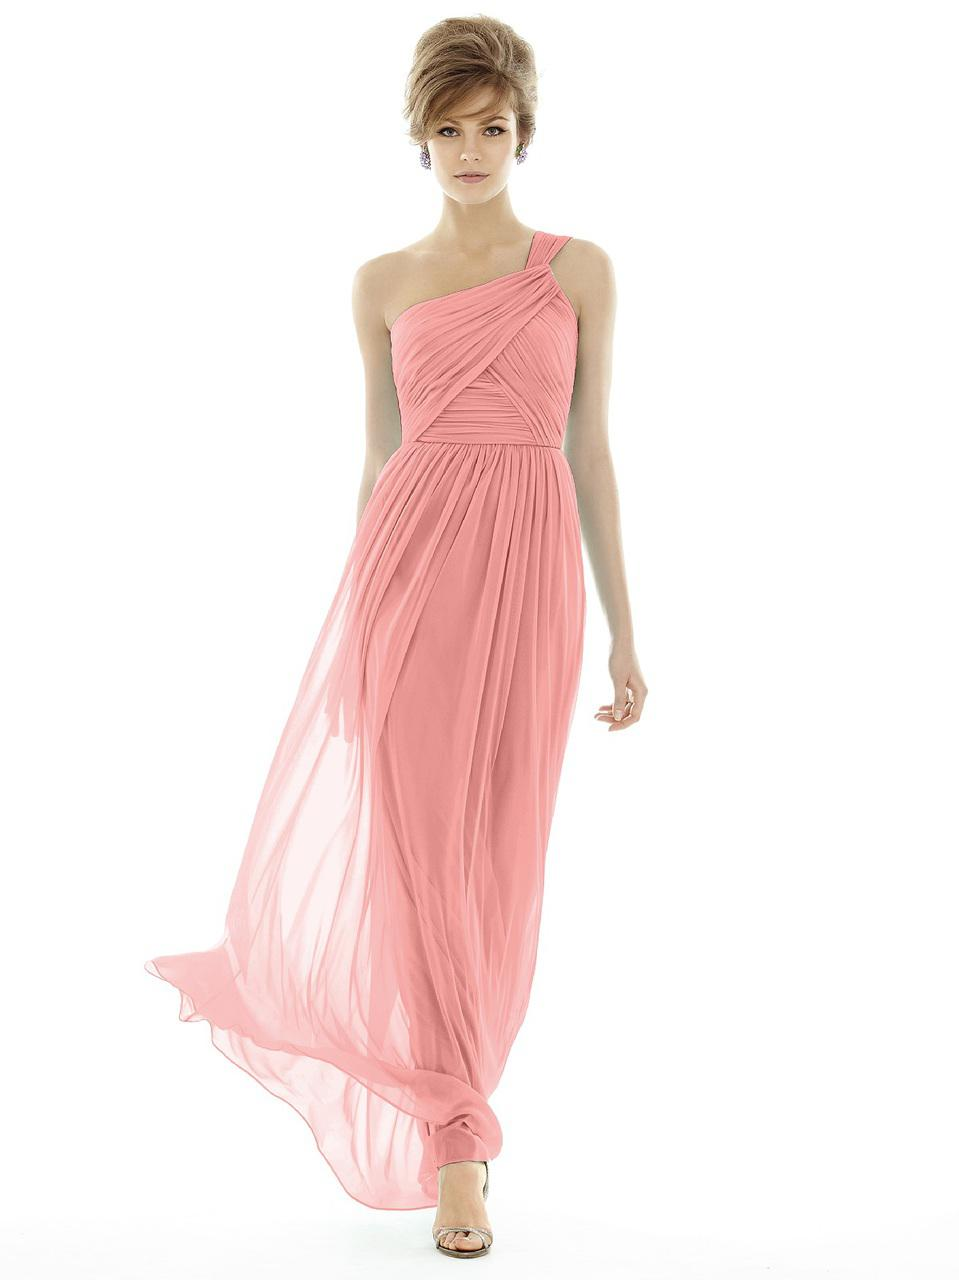 Lyst - Alfred Sung D Bridesmaid Dress In Apricot in Pink - Save 12%